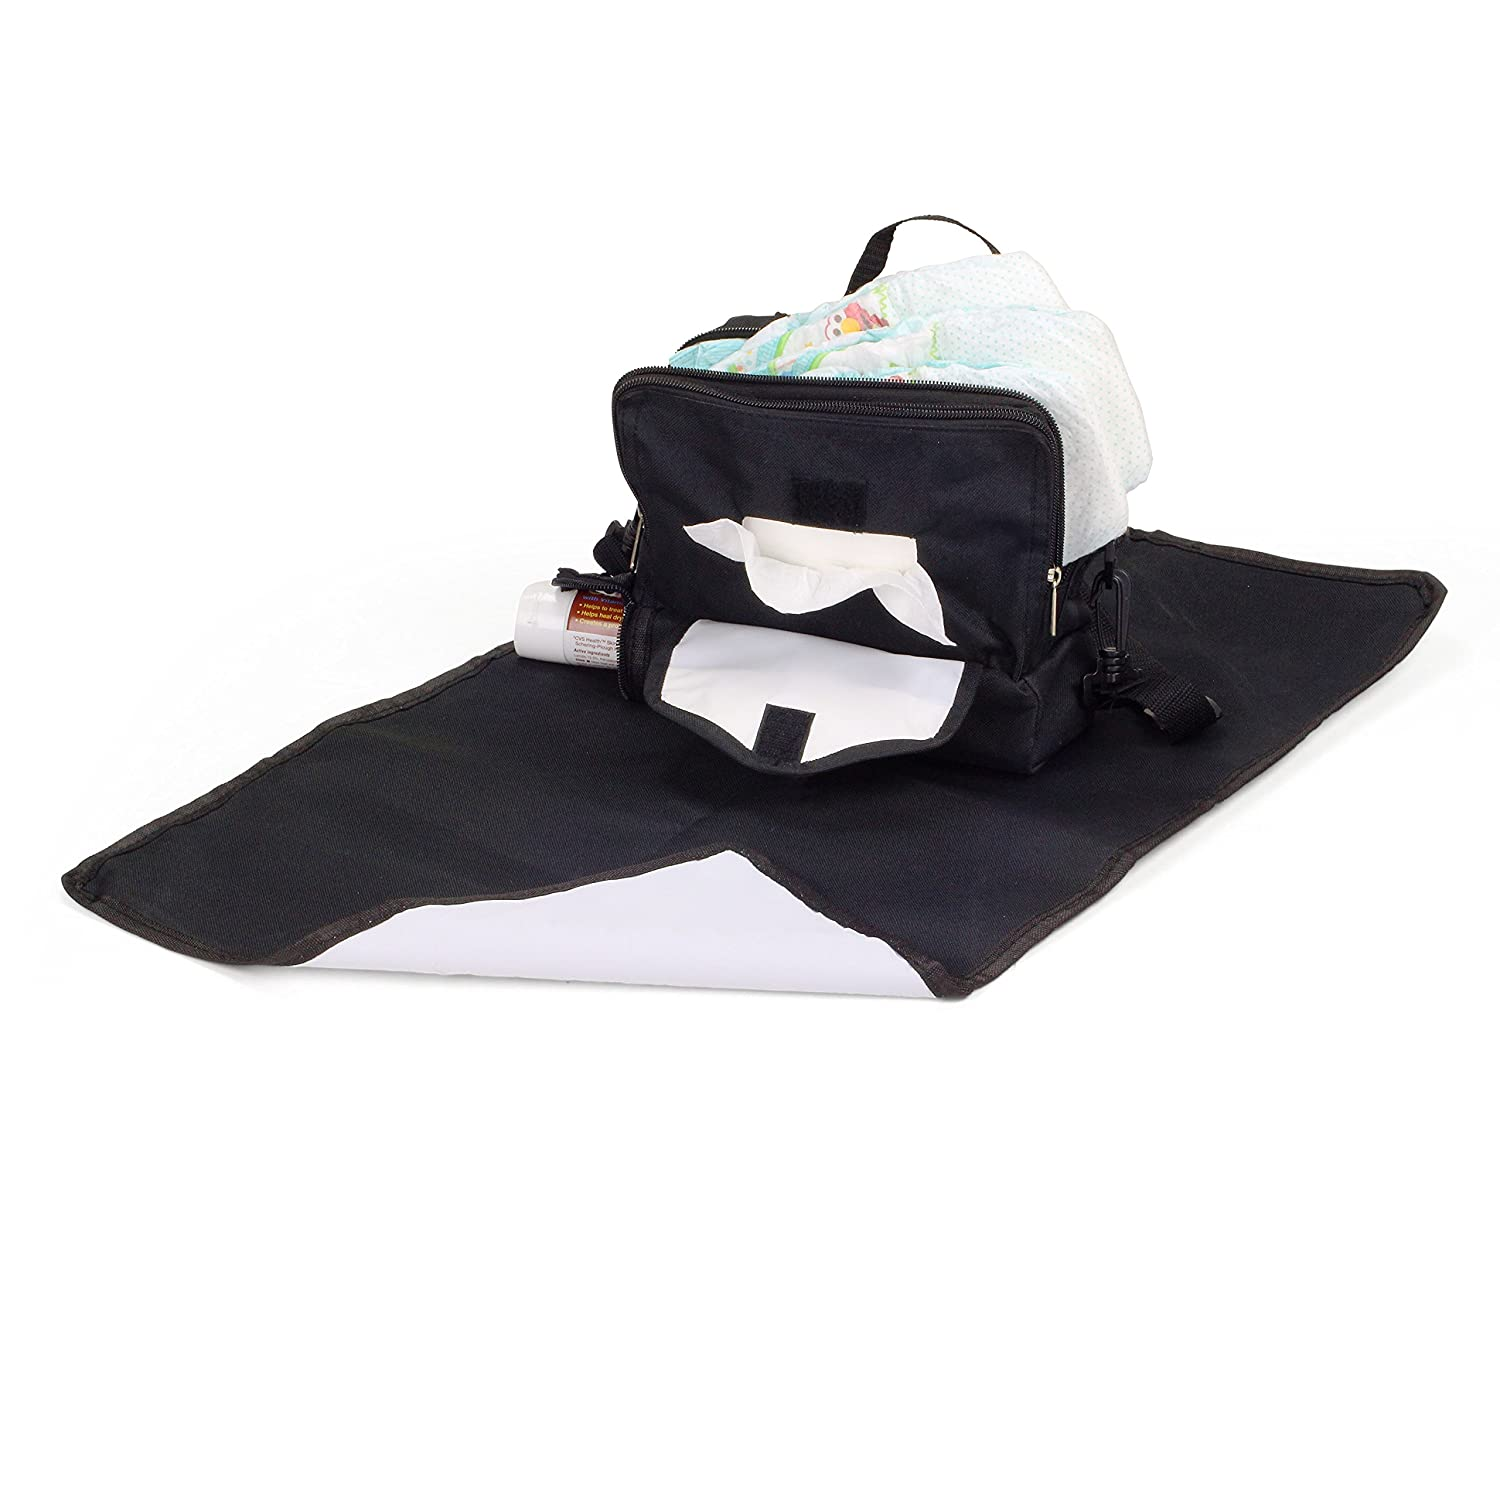 Diaper On-The-Go Baby Diaper Changing Bag Black ChangePal Waterproof Mat /& Shoulder Straps Includes Lined 3 Compartments Baby Wipes /& Portable Changing Pad Compartments